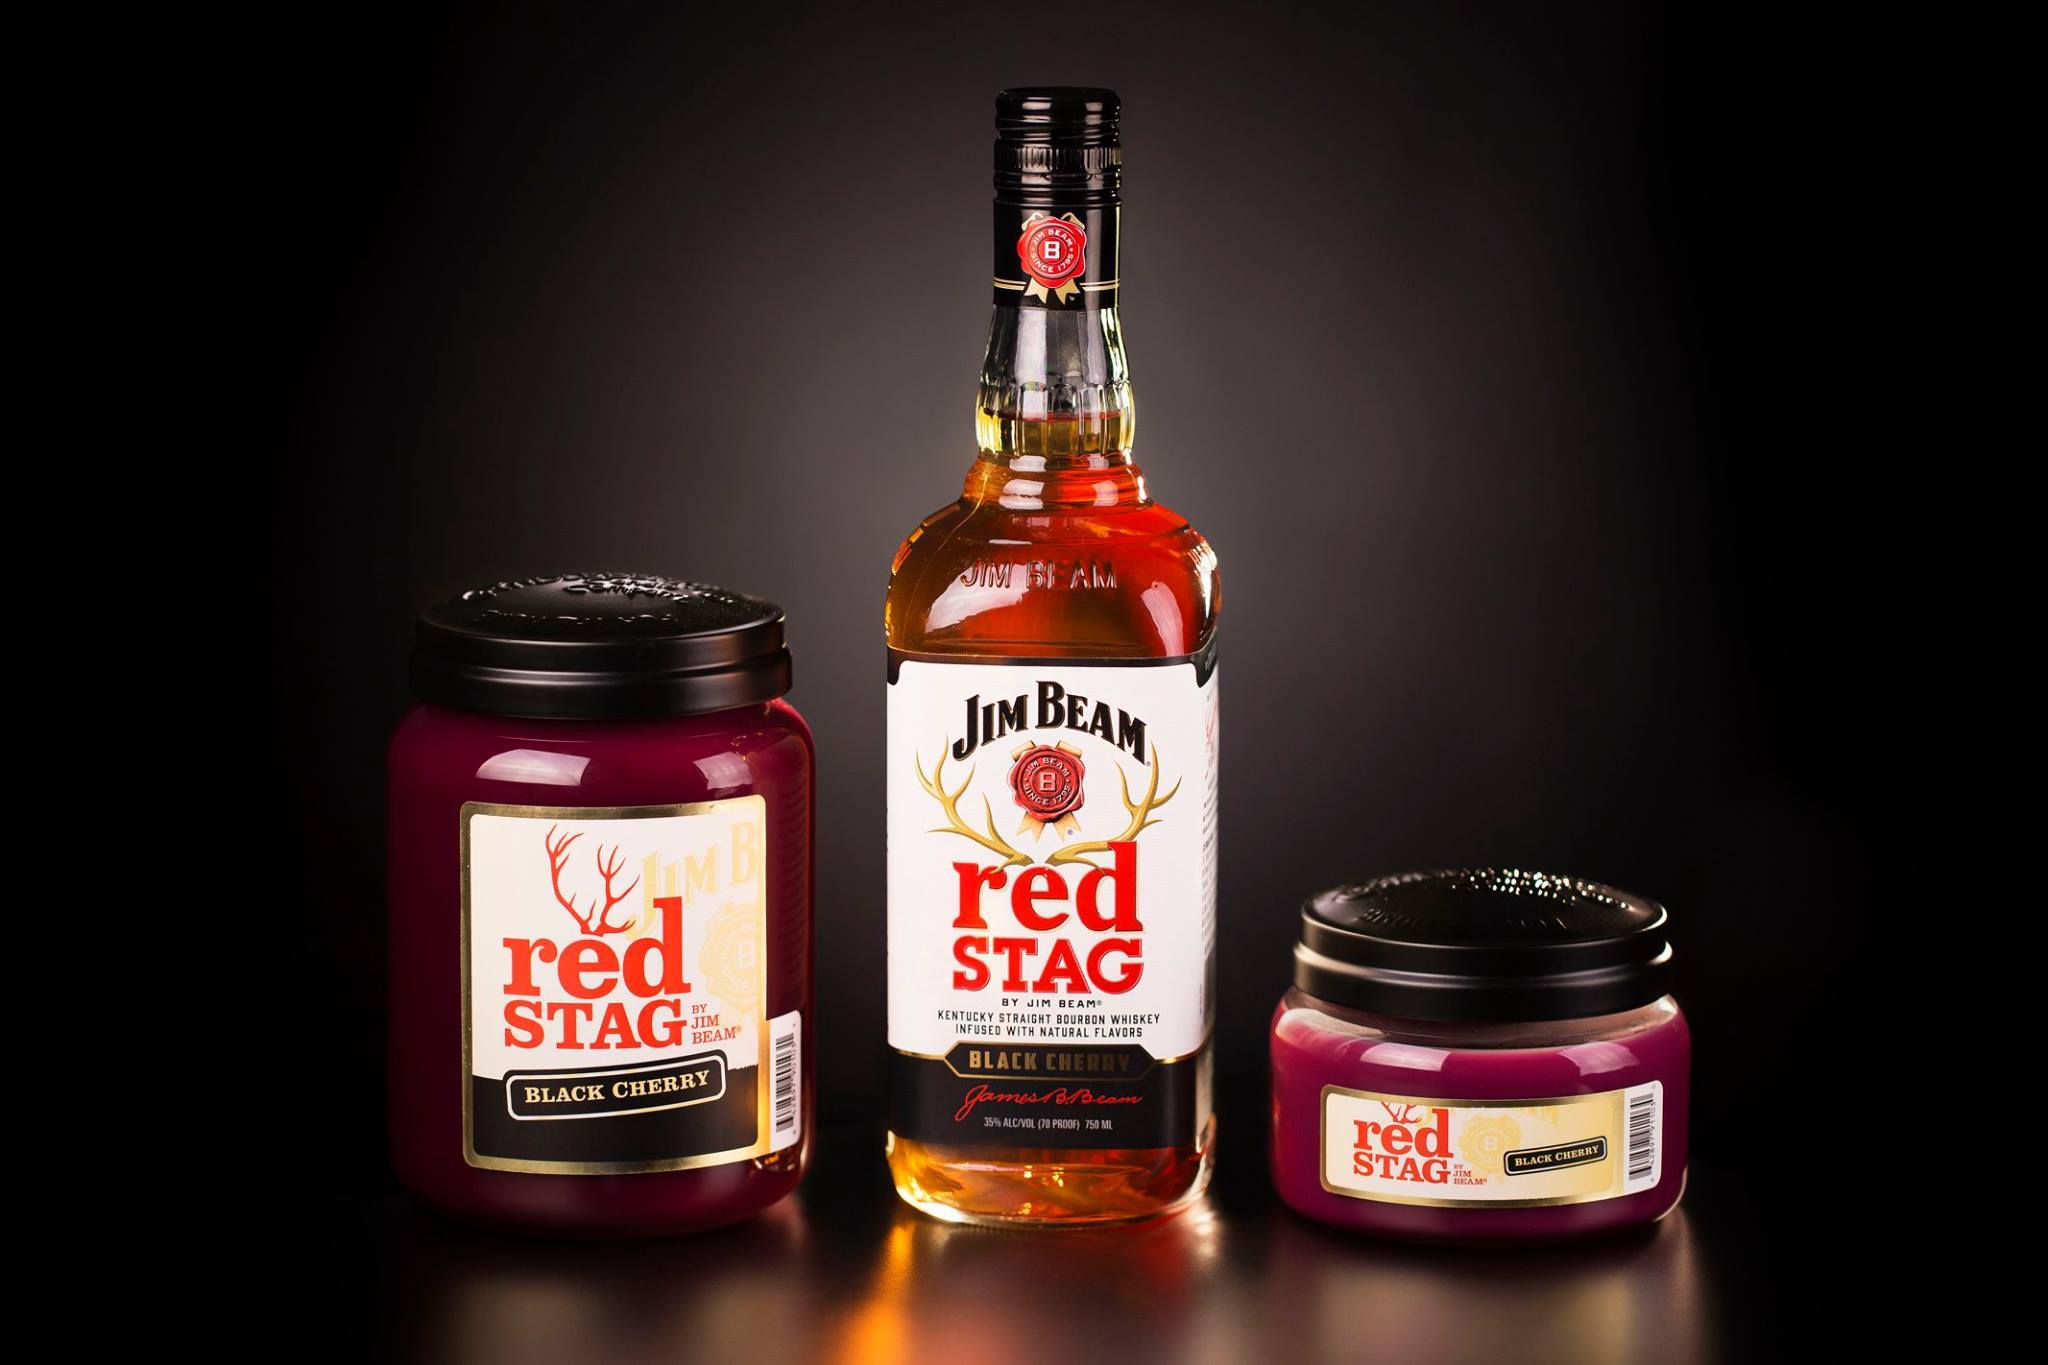 Red Stag®, Jim Beam Black Cherry®, 10 oz. Jar, Scented Candle Jim Beam, 10 oz. Small Jar Candle The Candleberry Candle Company